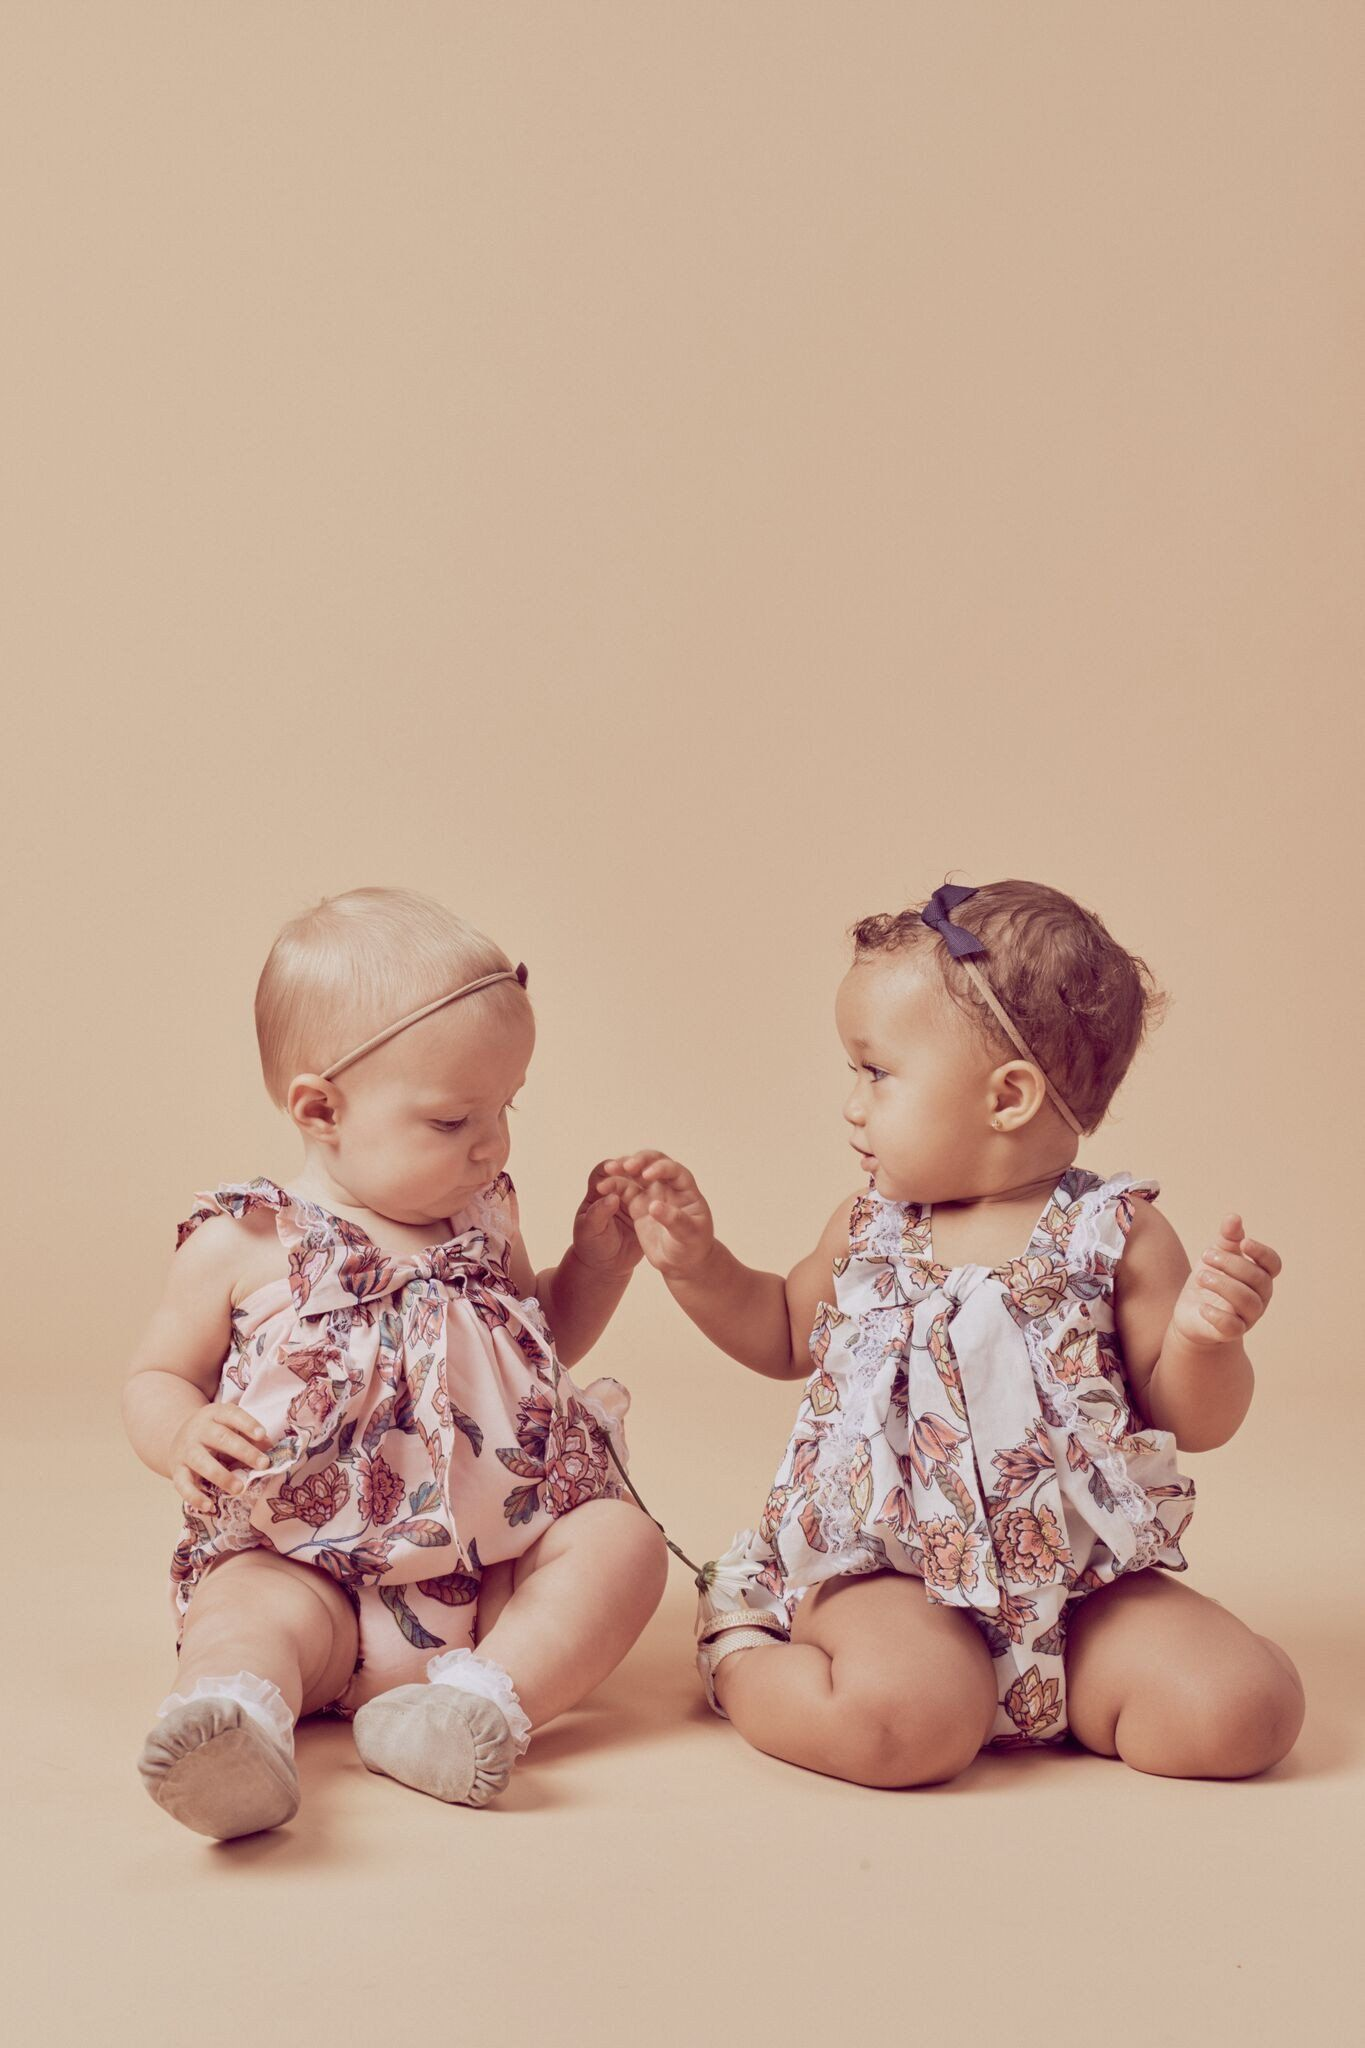 f6af4be39fe1 The Camellia Flower Romper is every girly girl s dream. The original hand  drawn flowers and